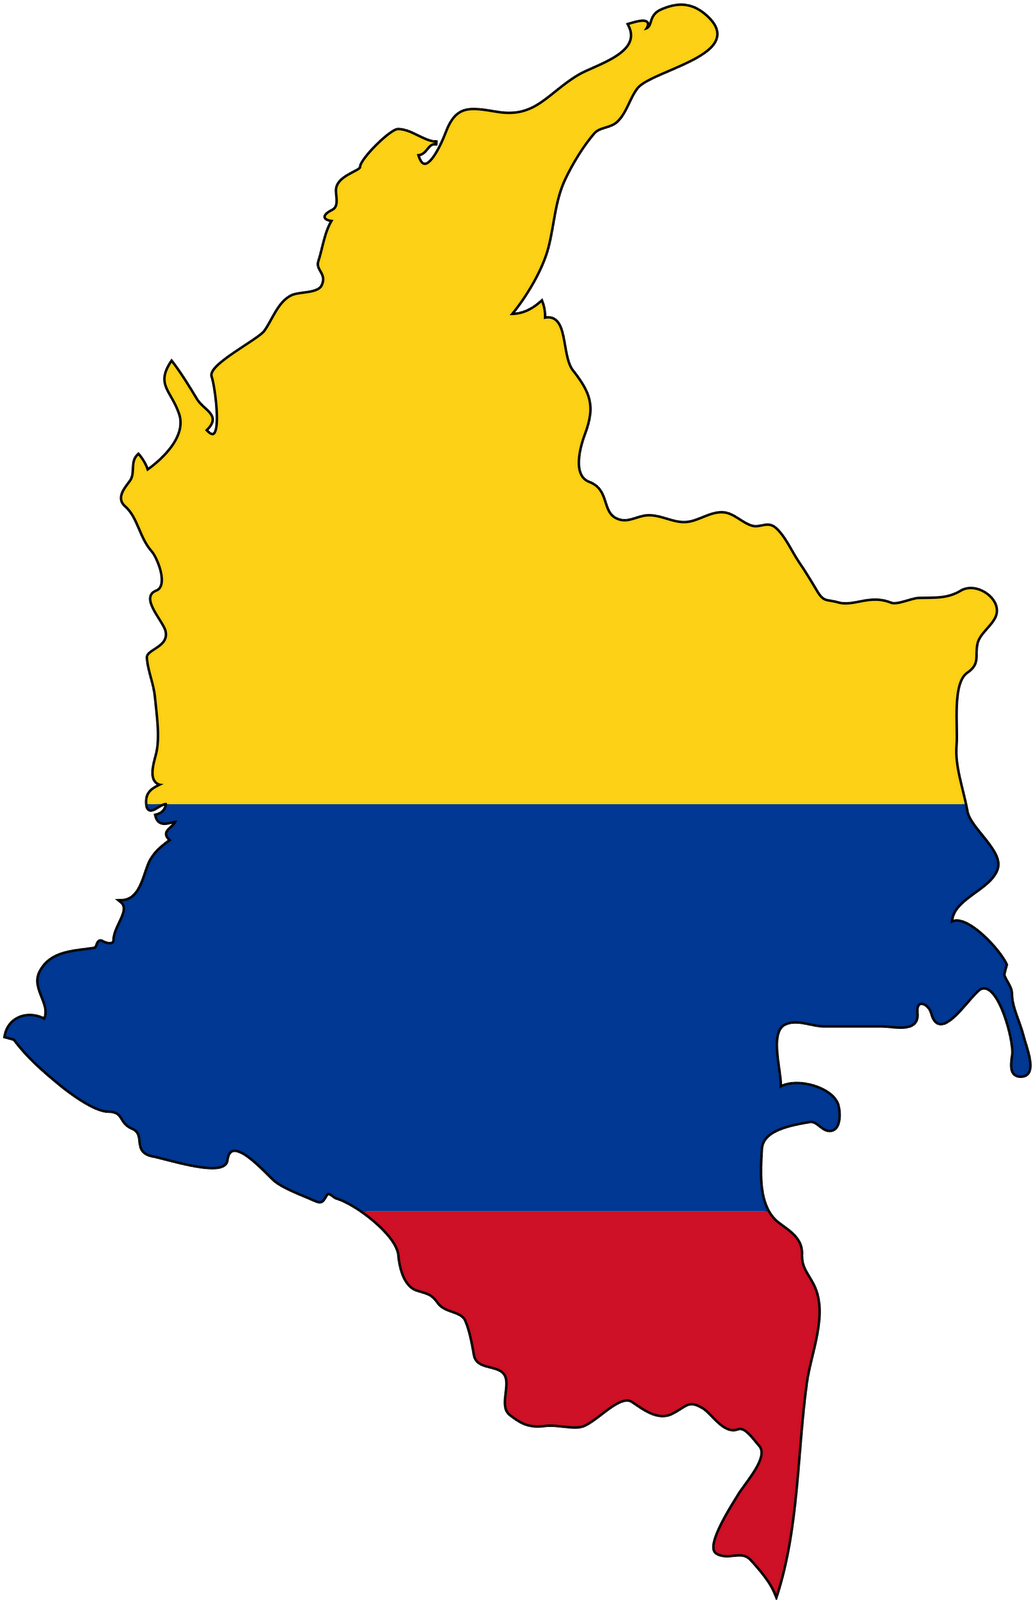 Colombia flag colors colombian. Geography clipart lost map